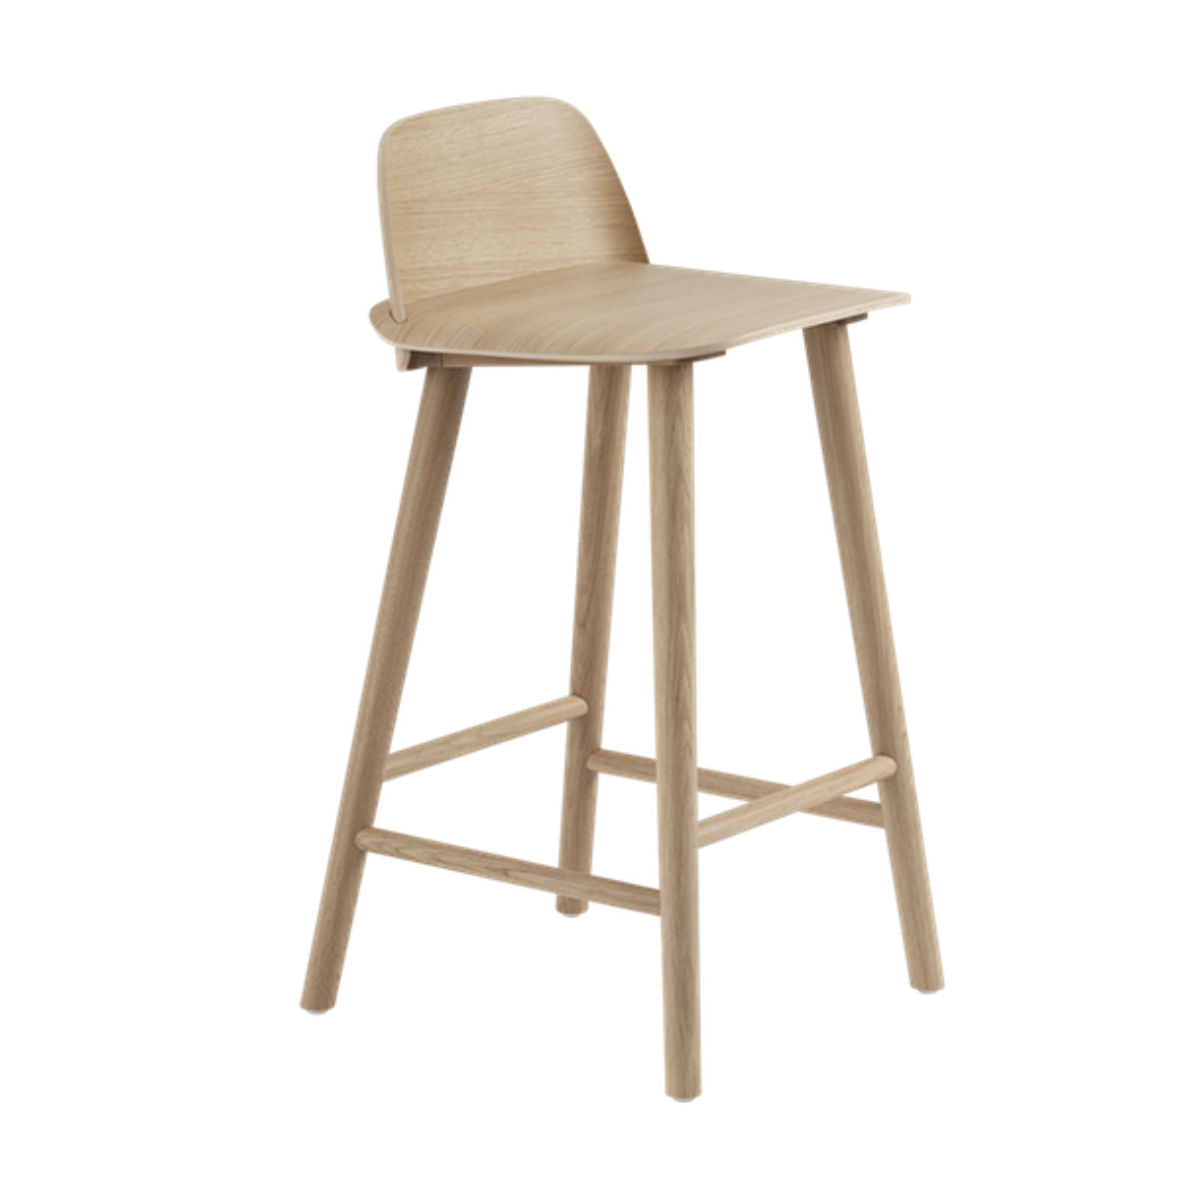 Muuto Nerd bar stool 65cm, oak